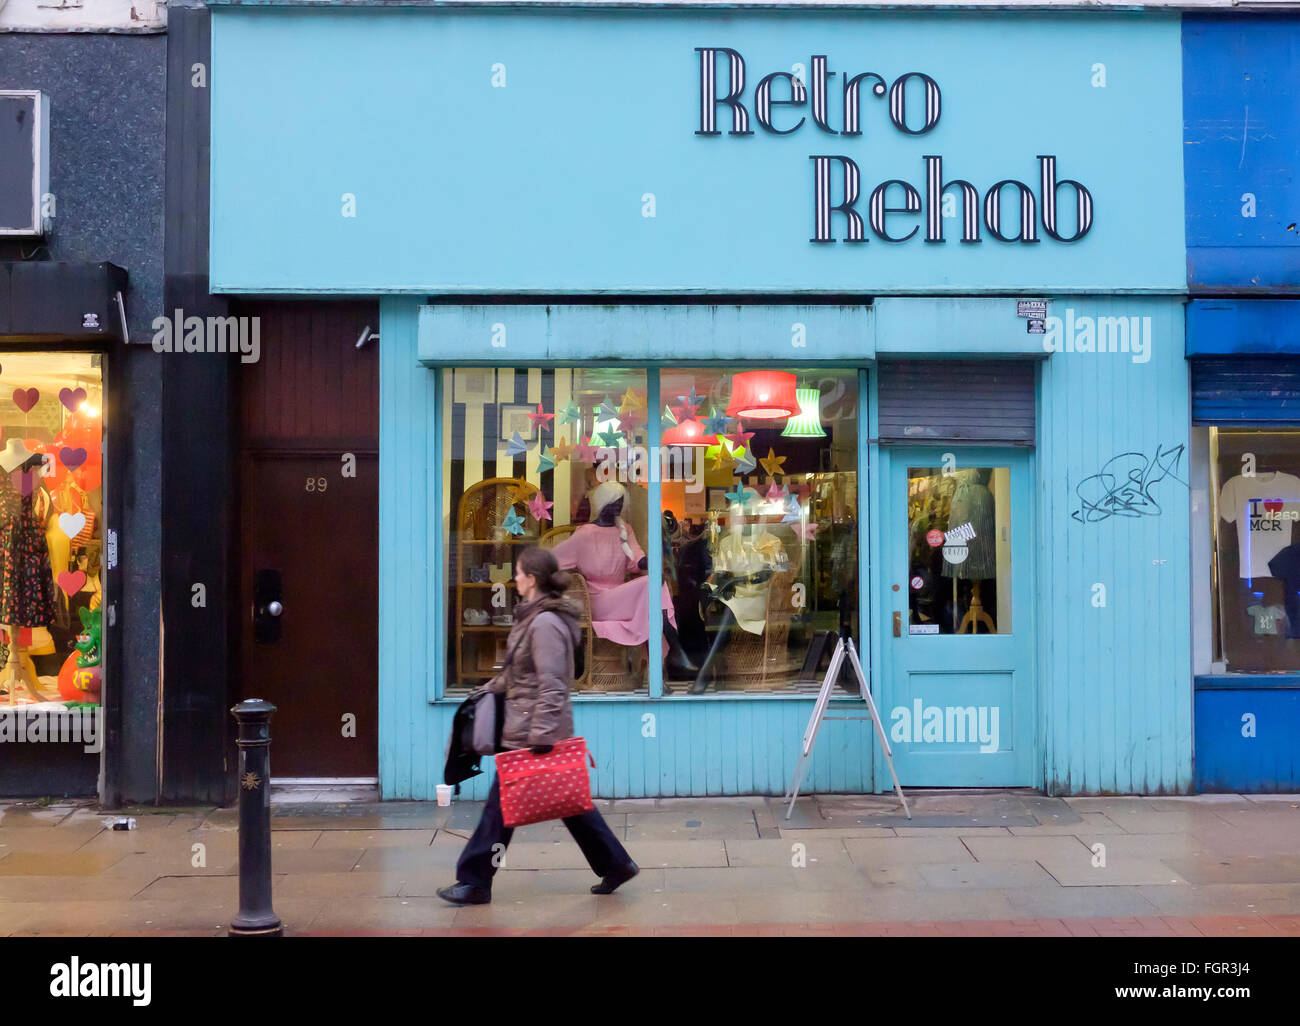 Manchester, UK - 17 February 2016: Retro Rehab vintage fashion store on Oldham Street in the Northern Quarter - Stock Image